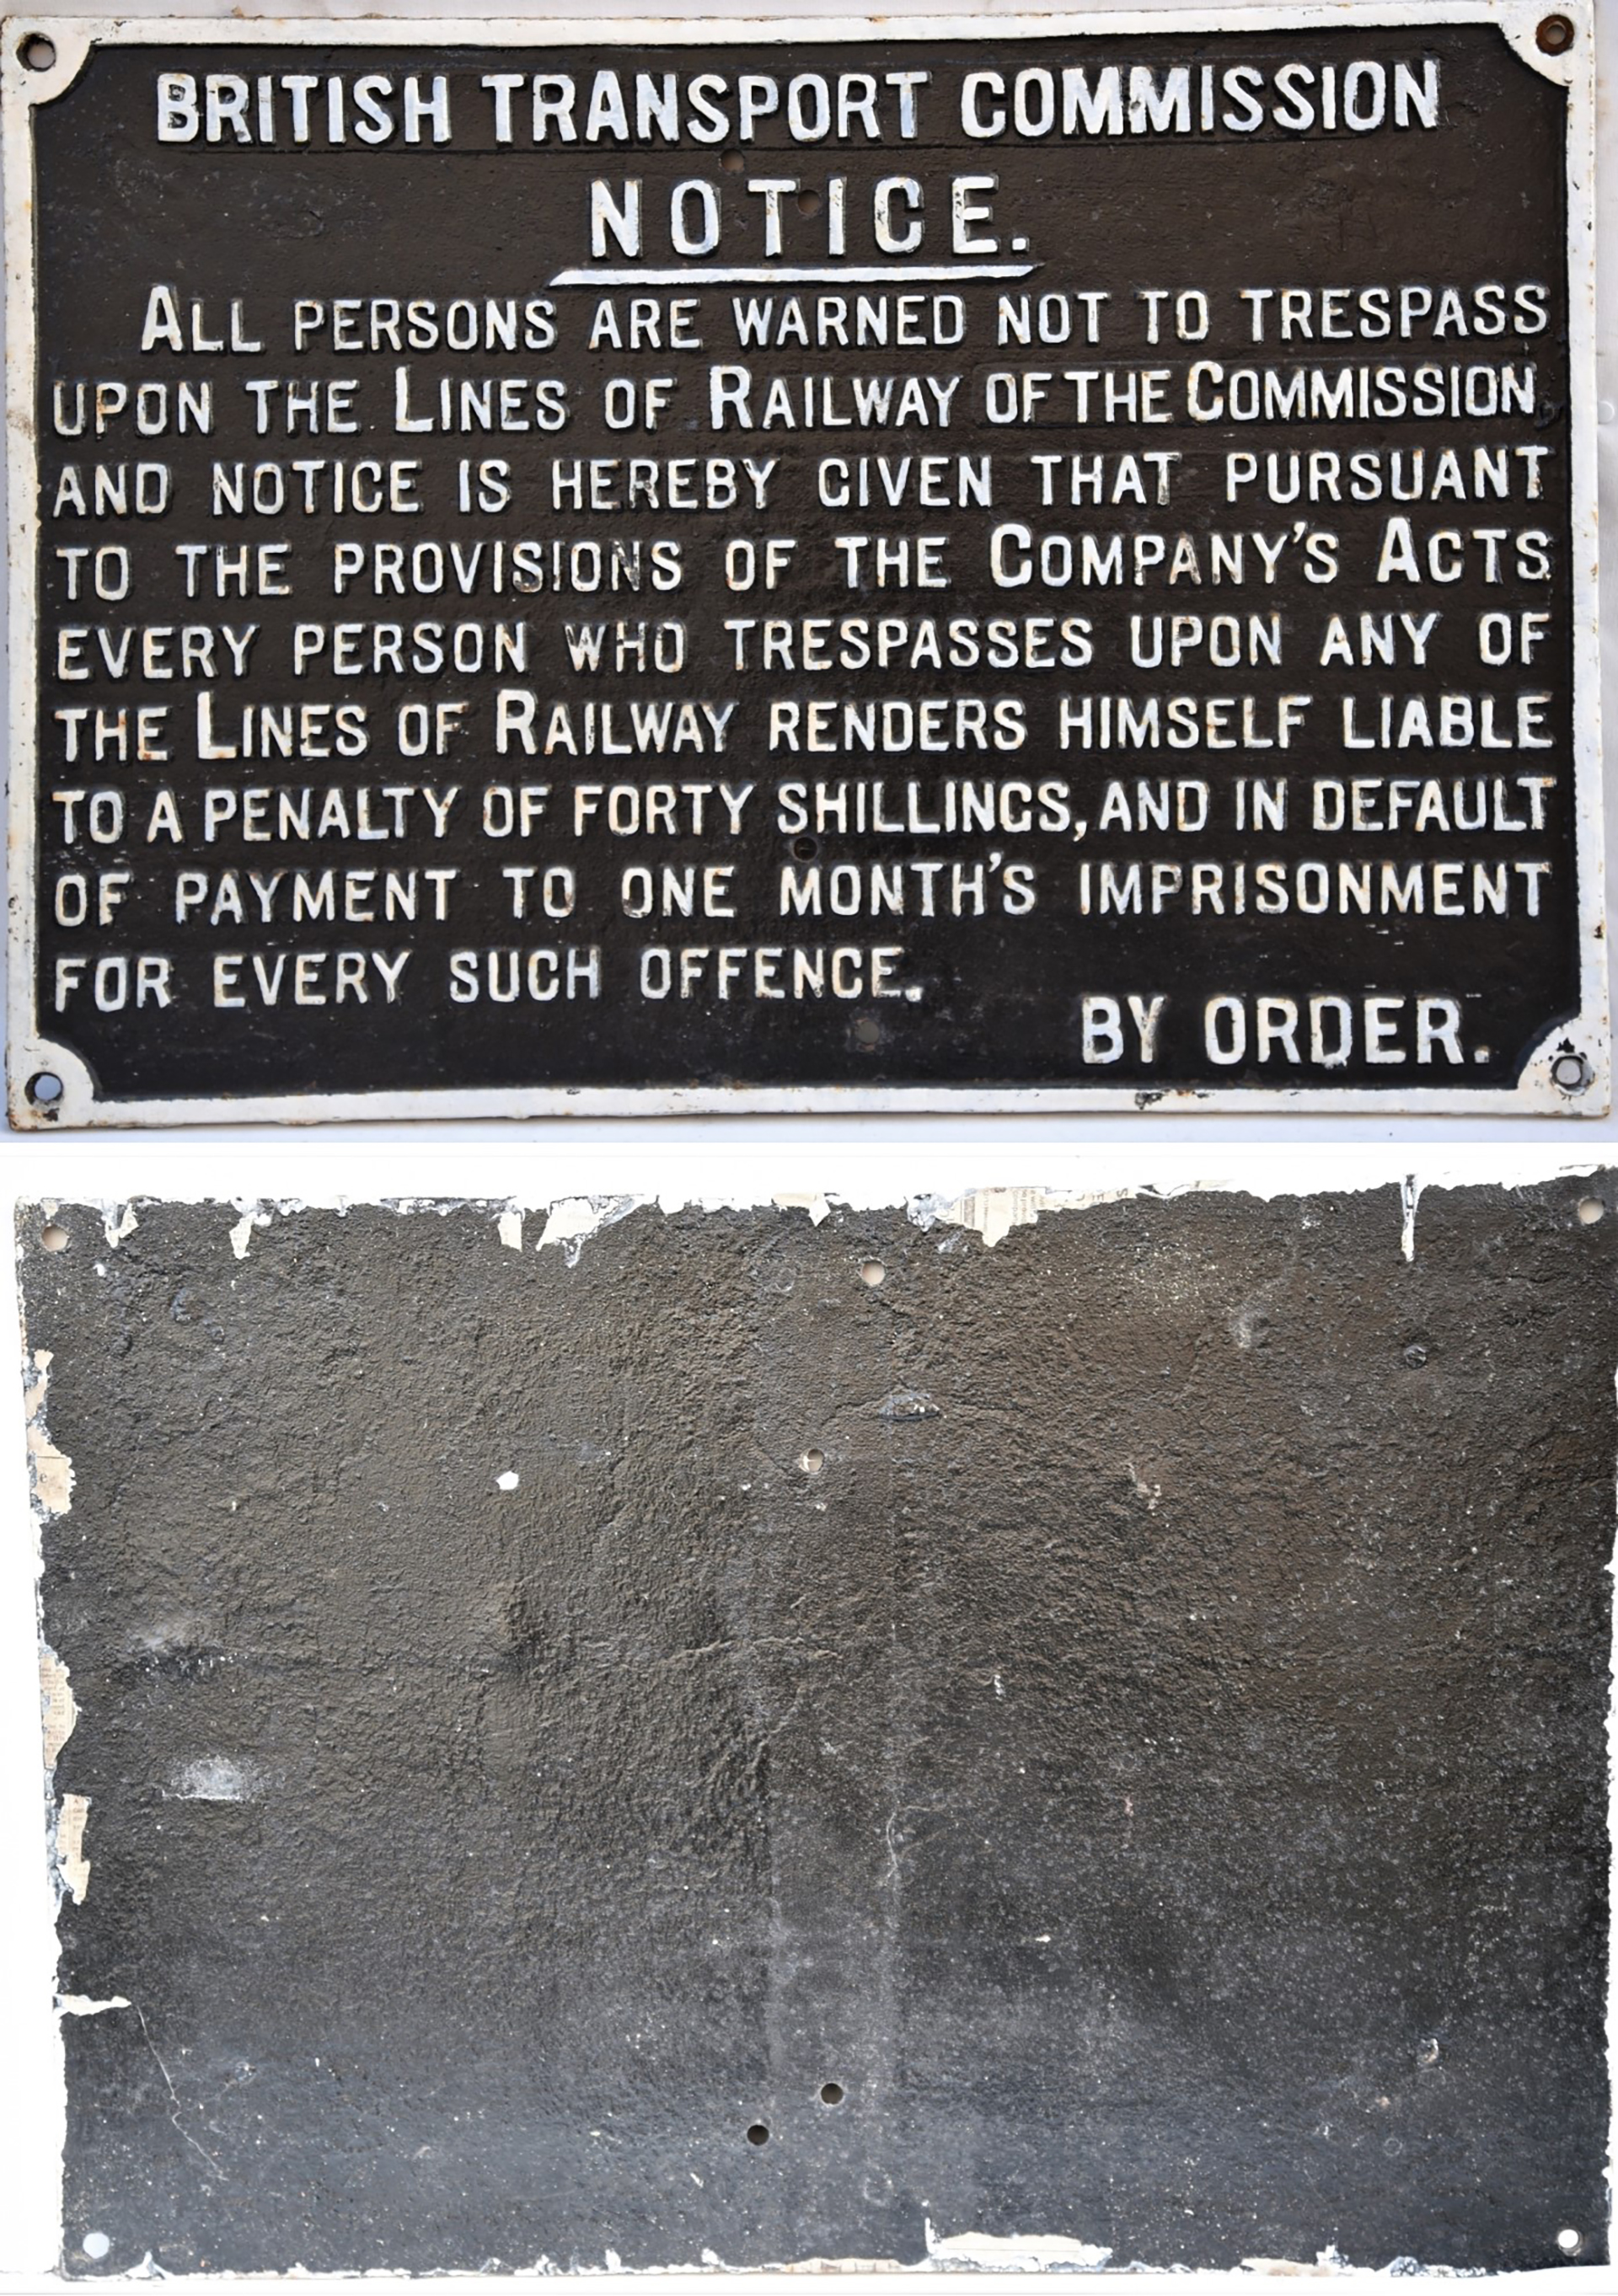 British Transport Commission cast iron notice. ALL PERSONS ARE WARNED NOT TO TRESPASS. Restored